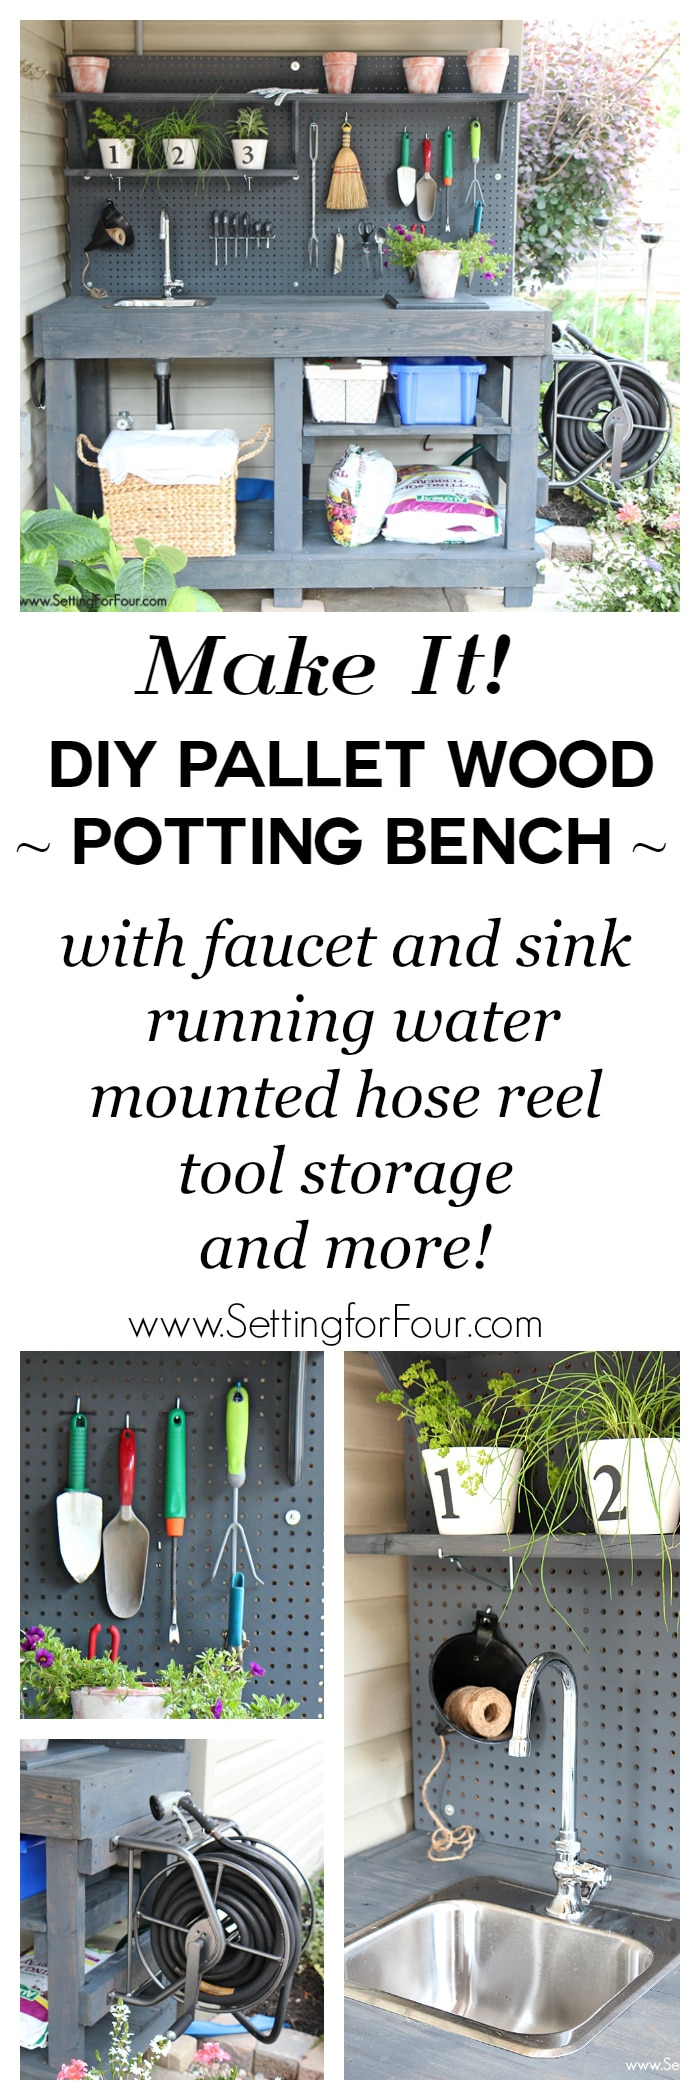 DIY Potting Bench with Sink